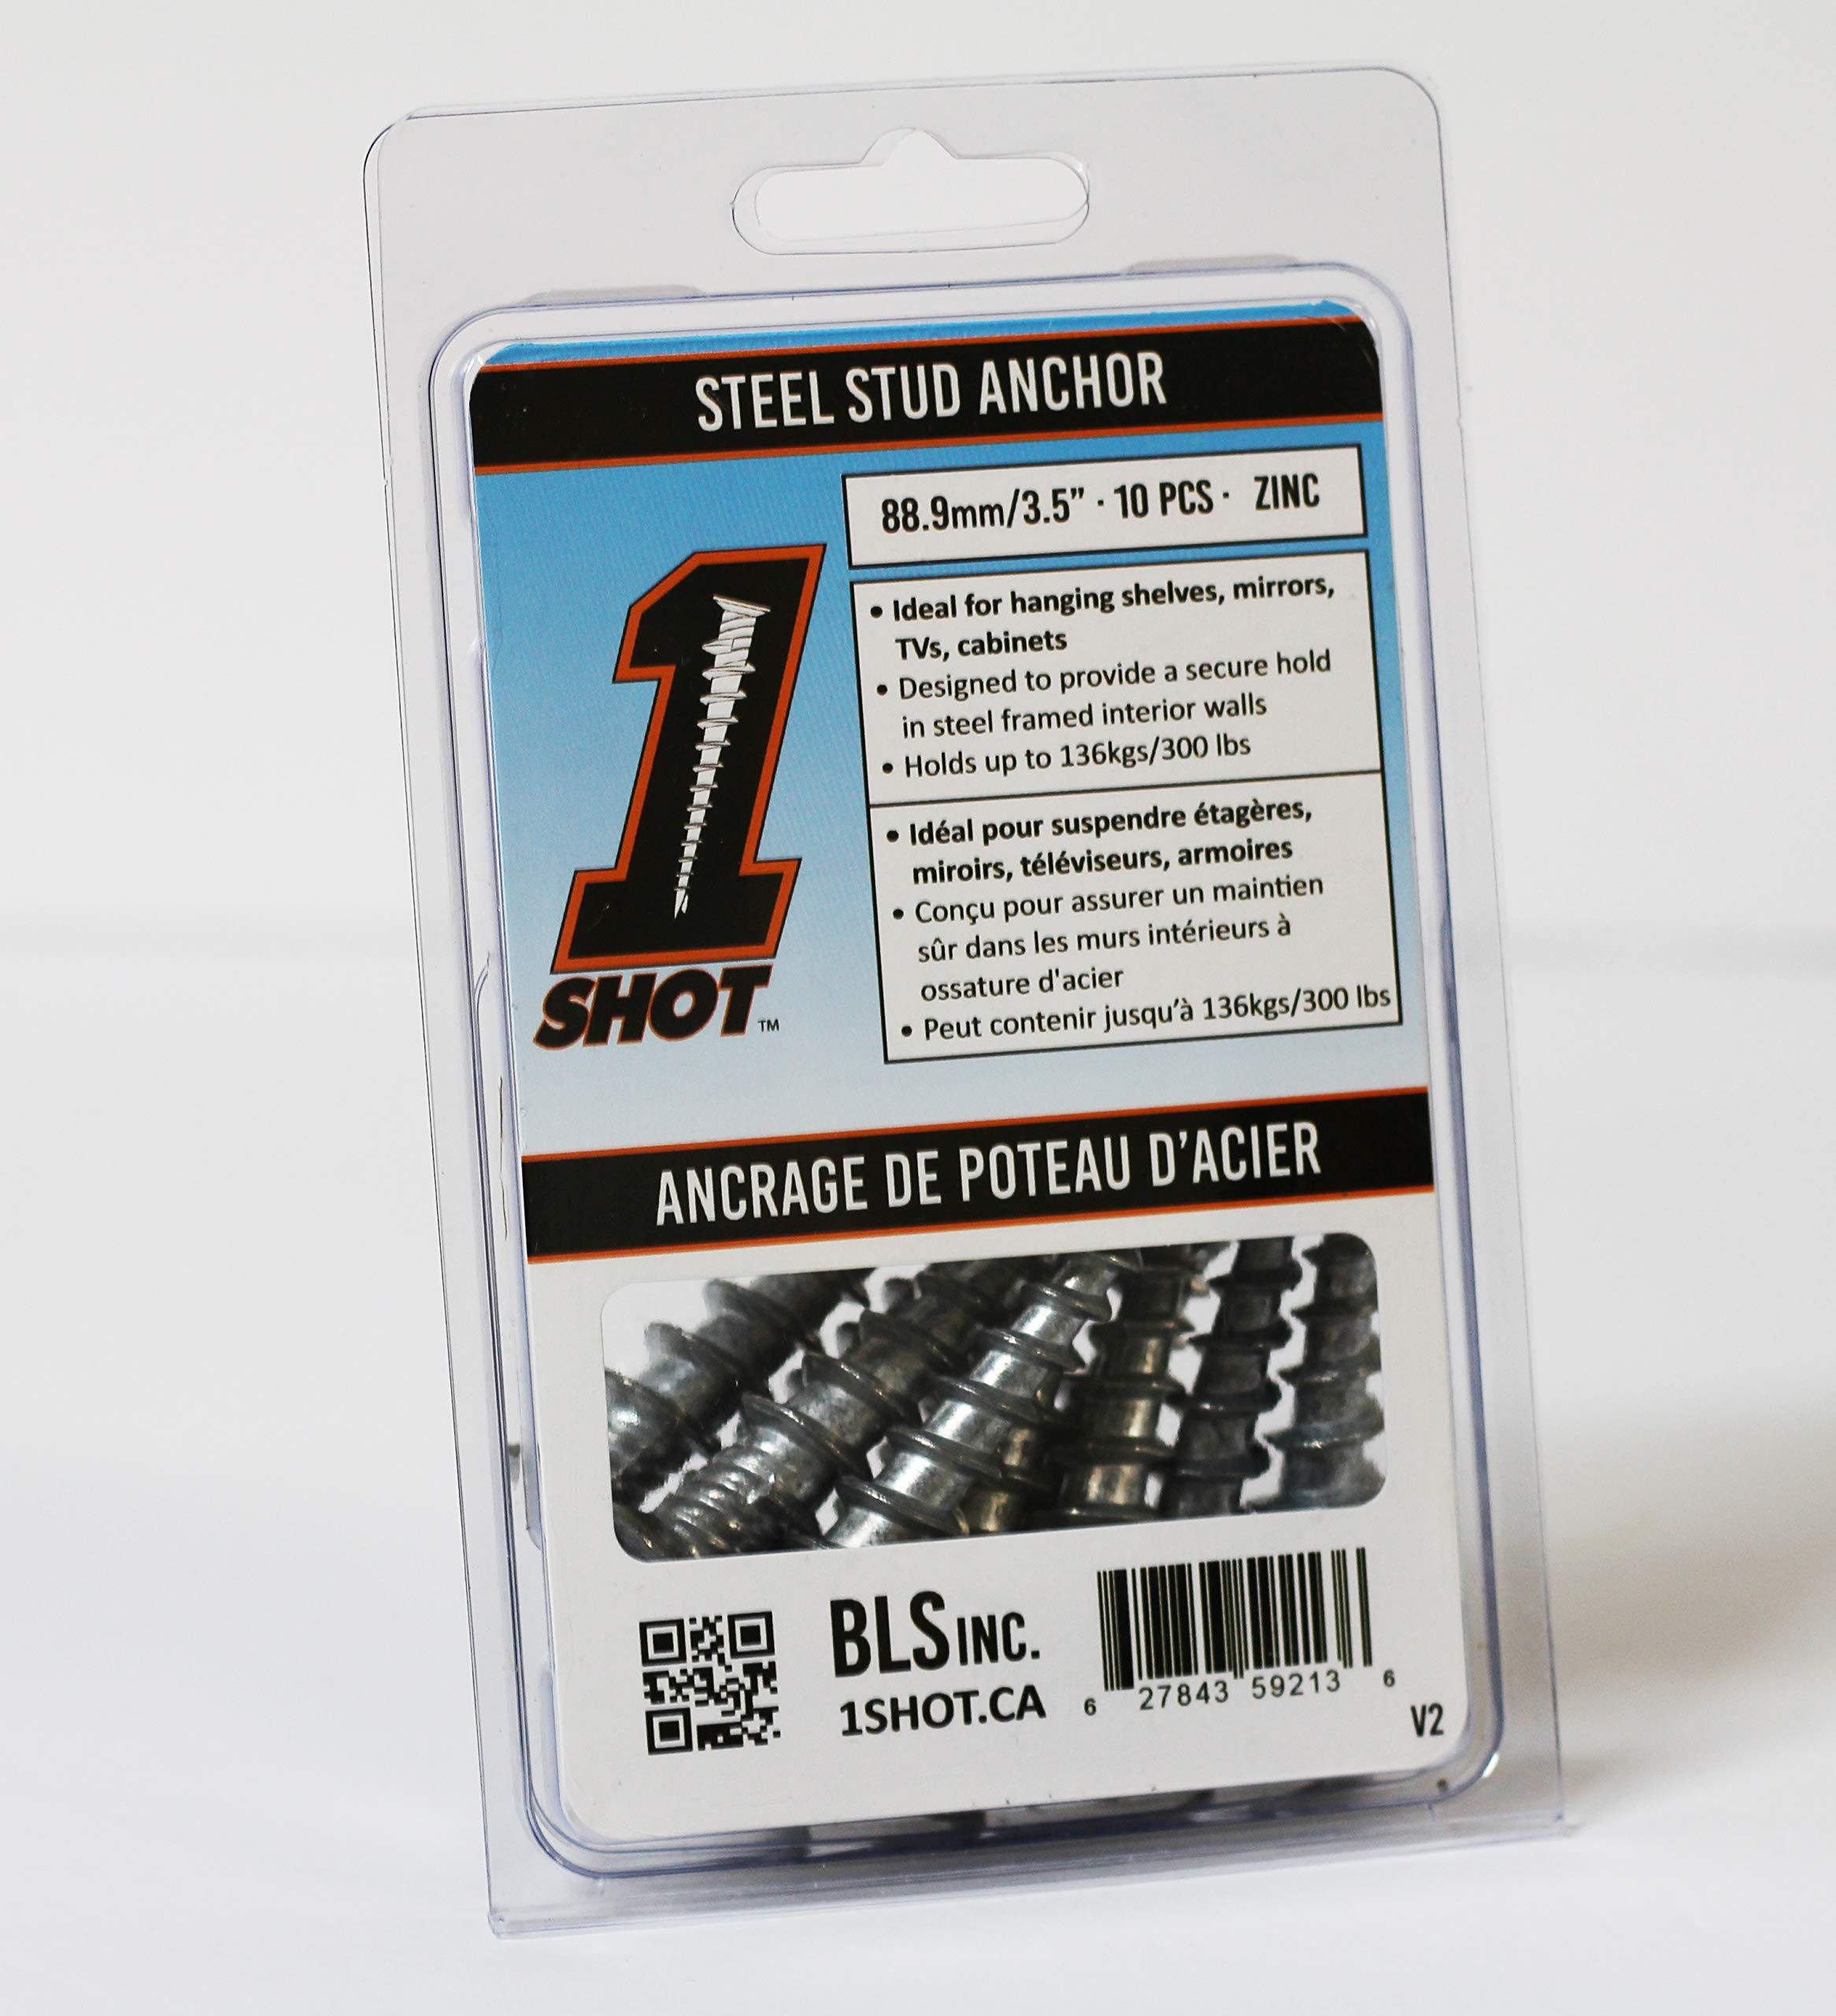 1 Shot Steel Stud Anchor 10 Pack by B.L.S. INC